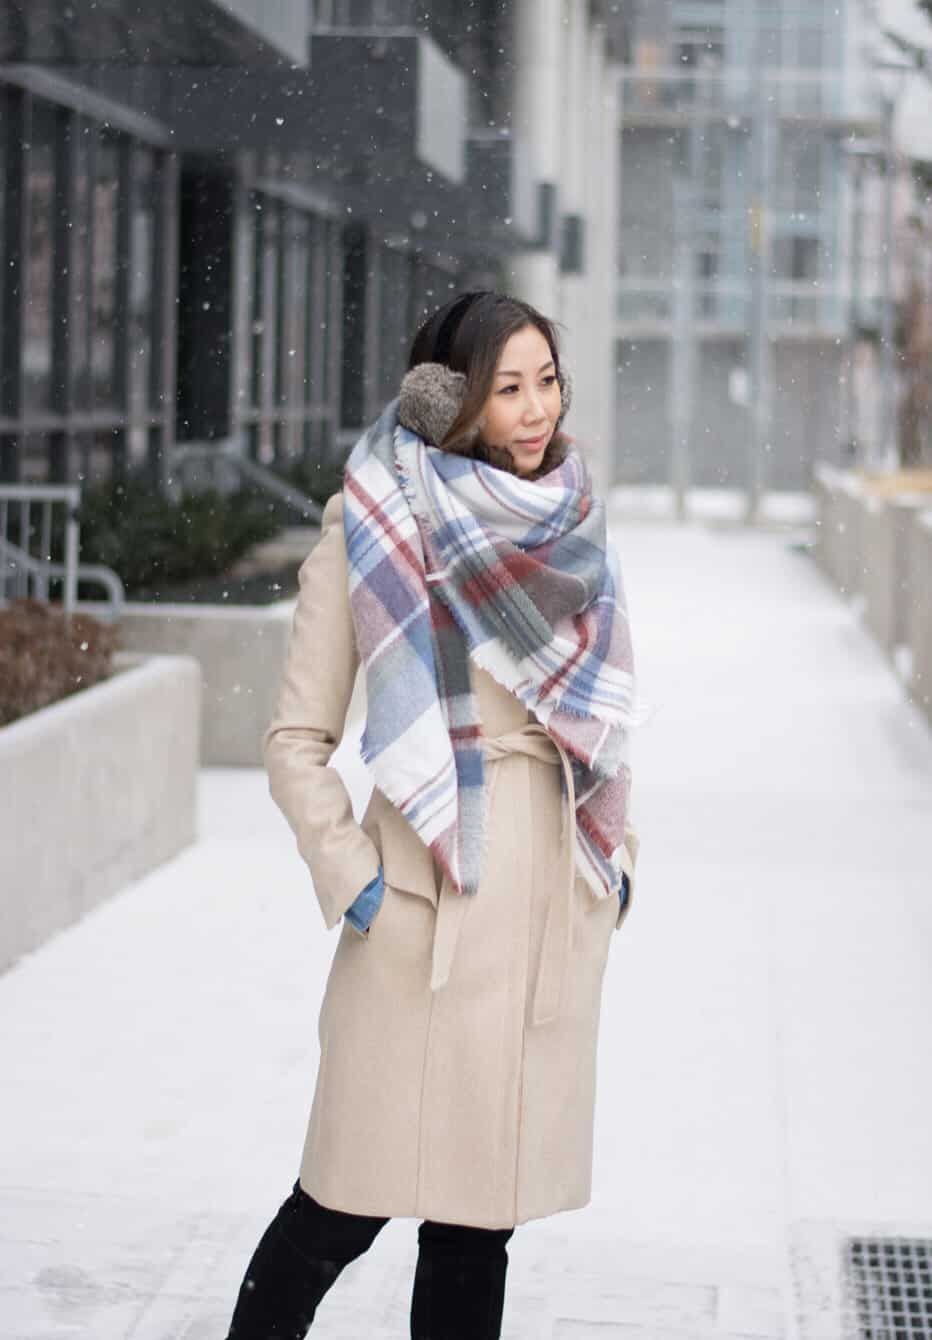 Cute Winter OOTD streetstyle look: plaid scarf and beige wool coat